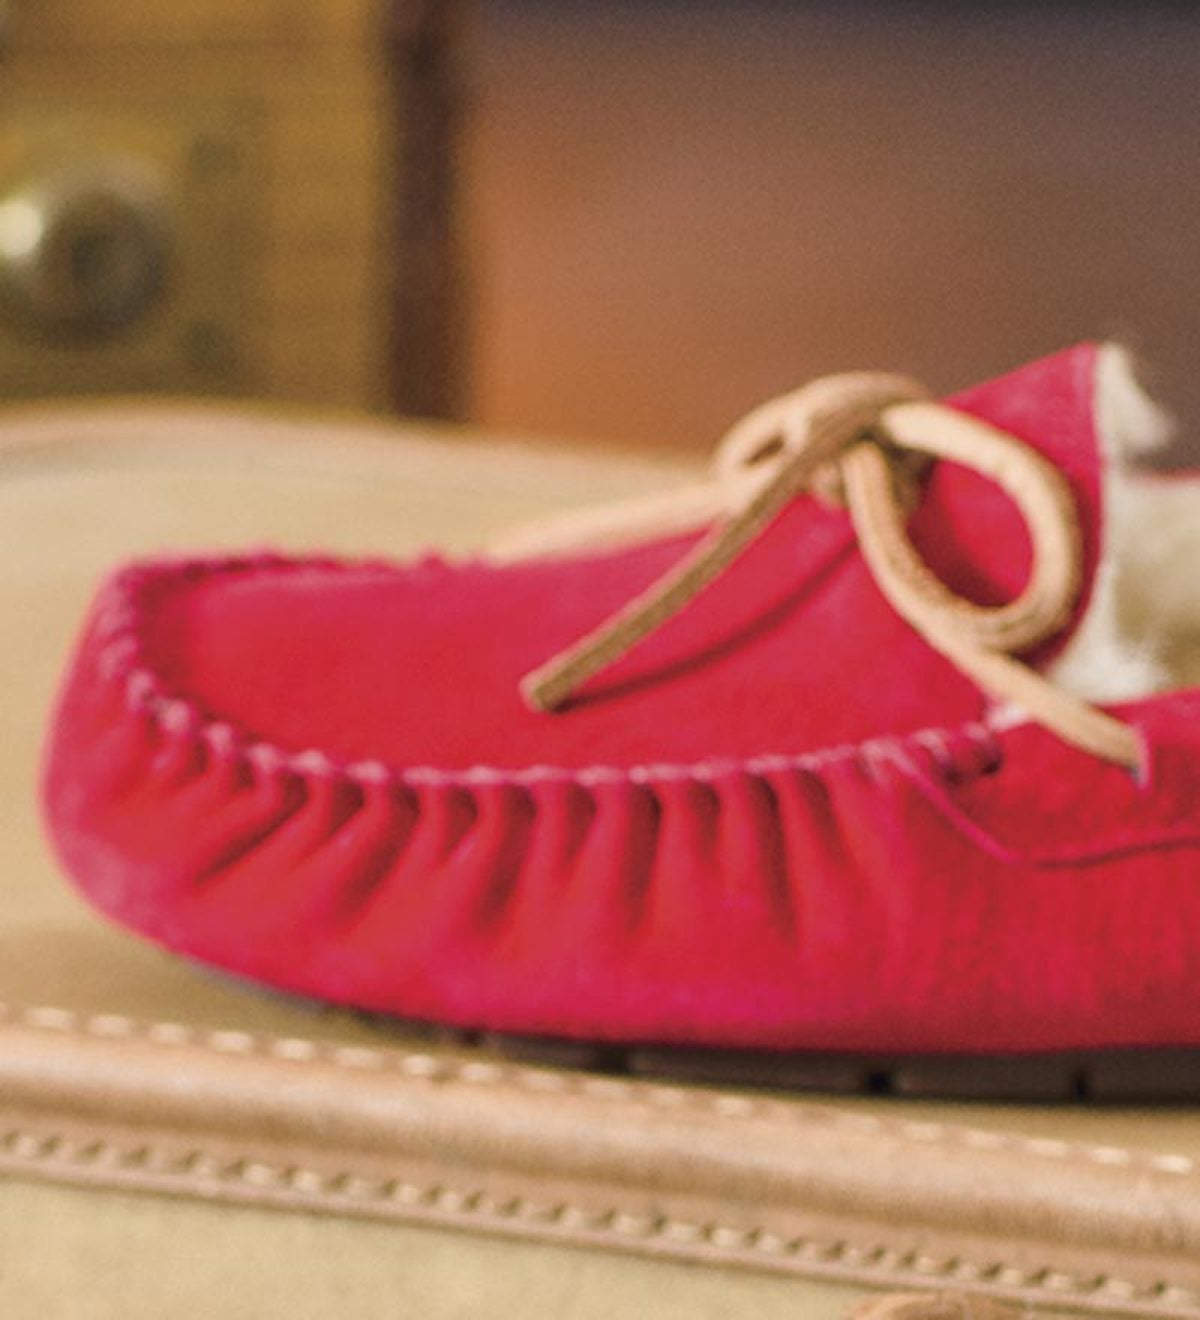 UGG Australia Womens Dakota Moccasin Slippers - Red - Size 6